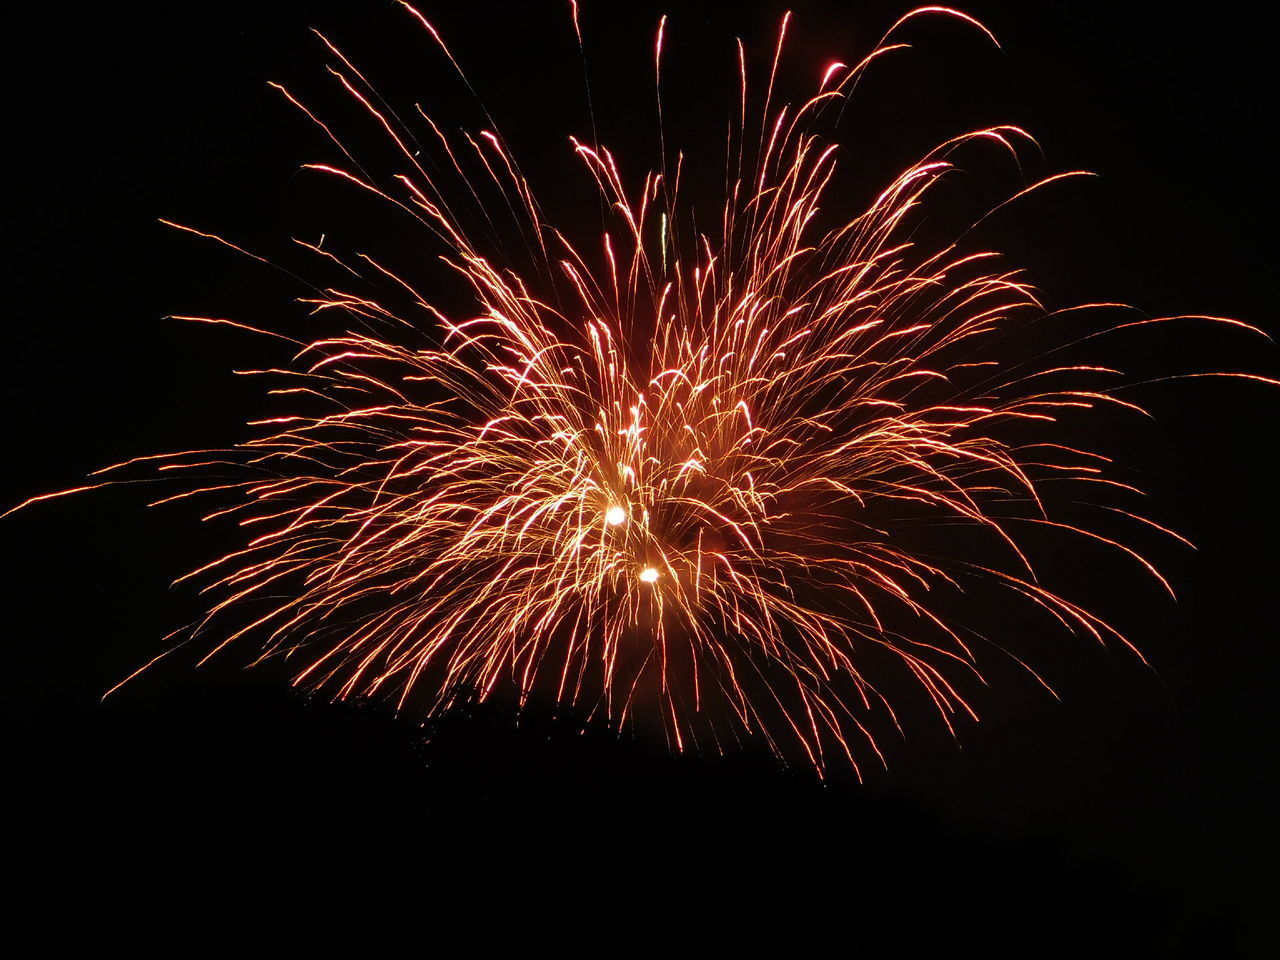 motion, illuminated, firework, night, glowing, long exposure, celebration, event, arts culture and entertainment, firework display, sky, blurred motion, exploding, no people, nature, low angle view, firework - man made object, light, outdoors, sparks